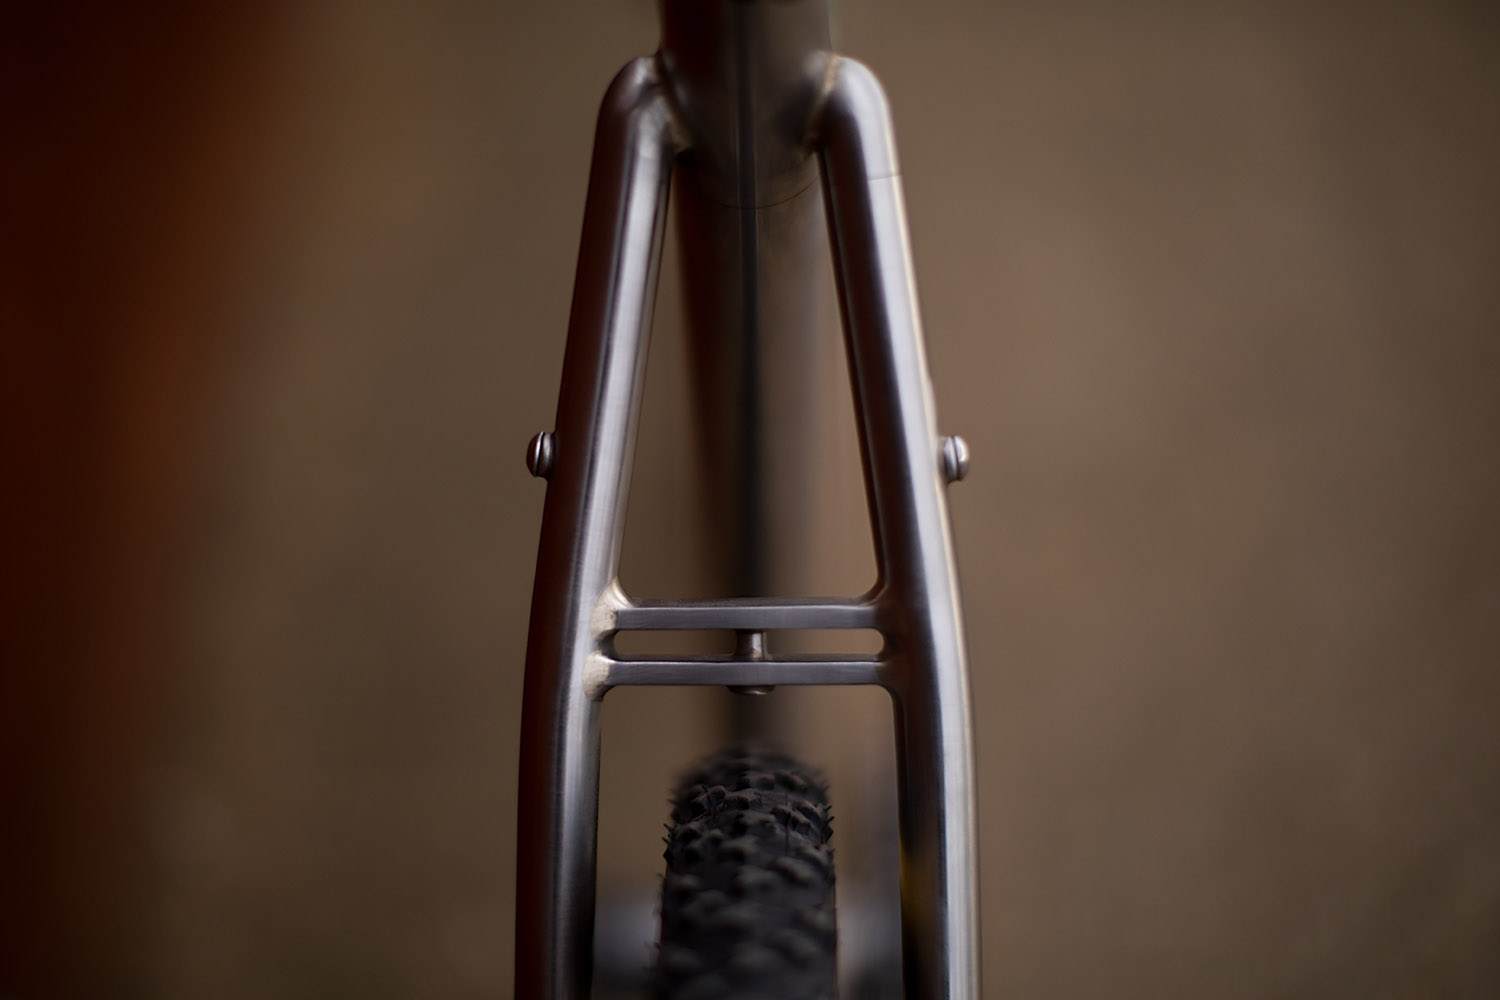 quirk_cycles_alistairs_stainless_bruiser_08.jpg